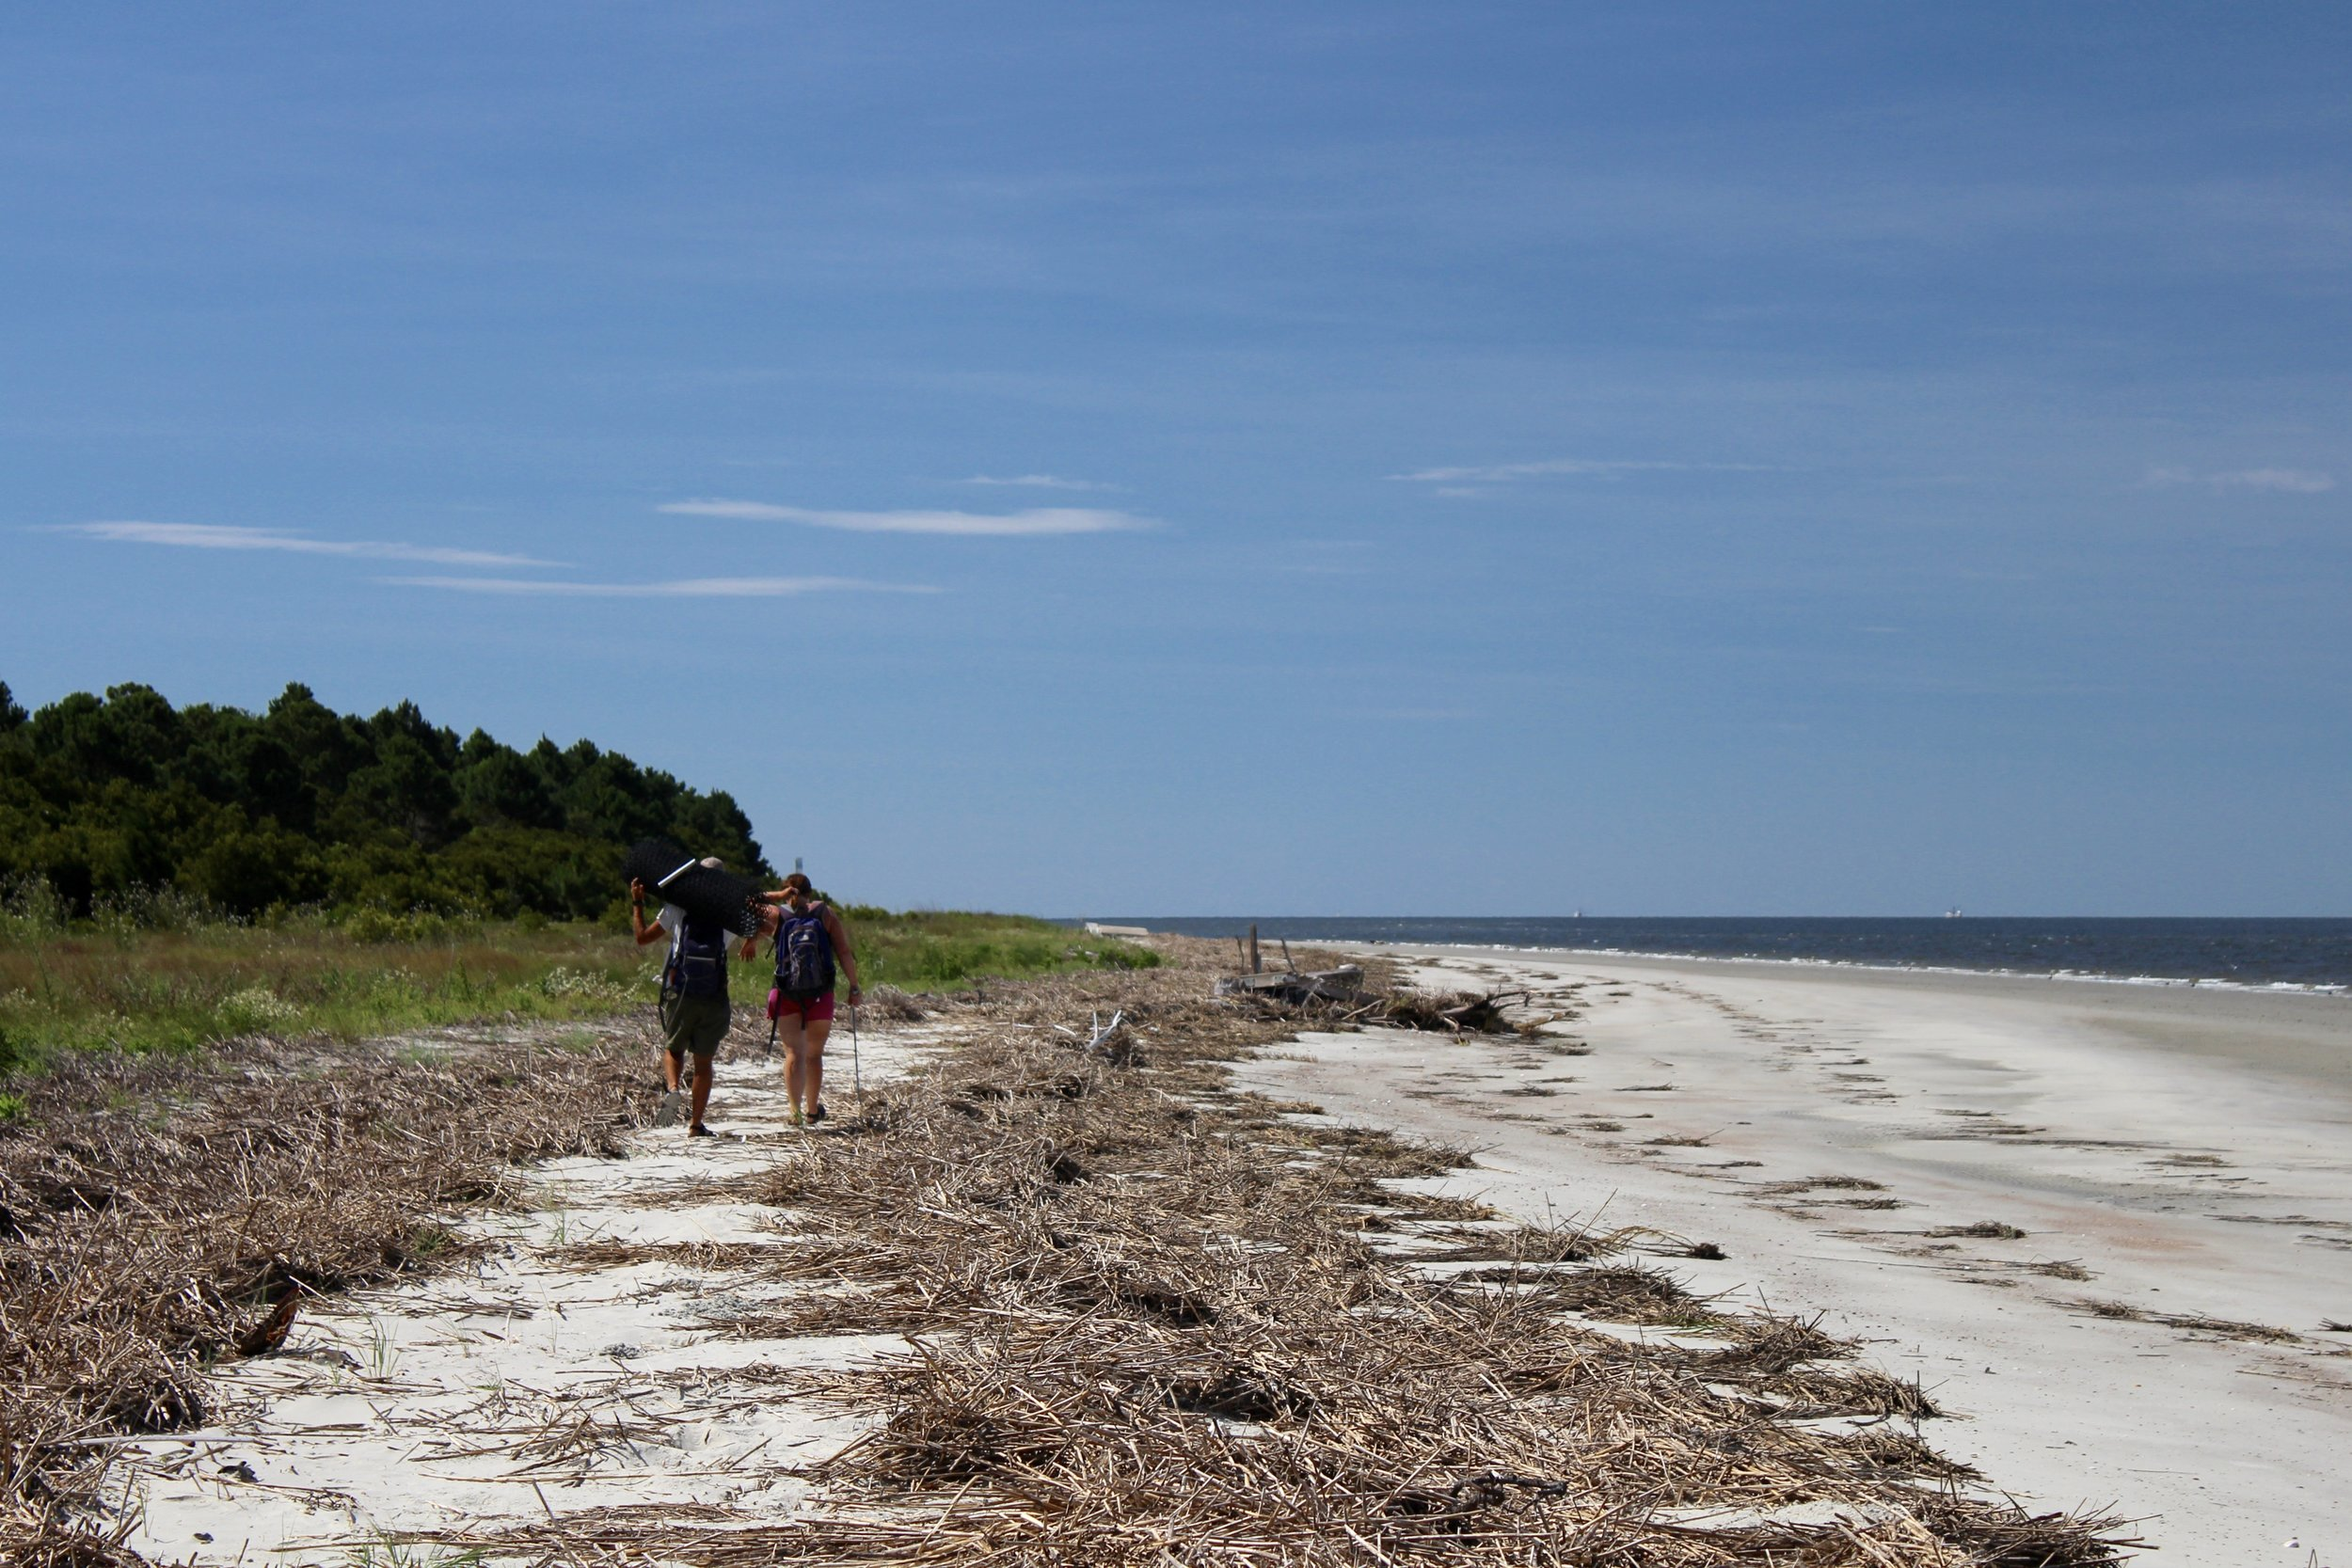 SCDNR biologists walk Otter Island's three-mile beach weekly in the summer to count and protect sea turtle nests. (Photo: E. Weeks/SCDNR)